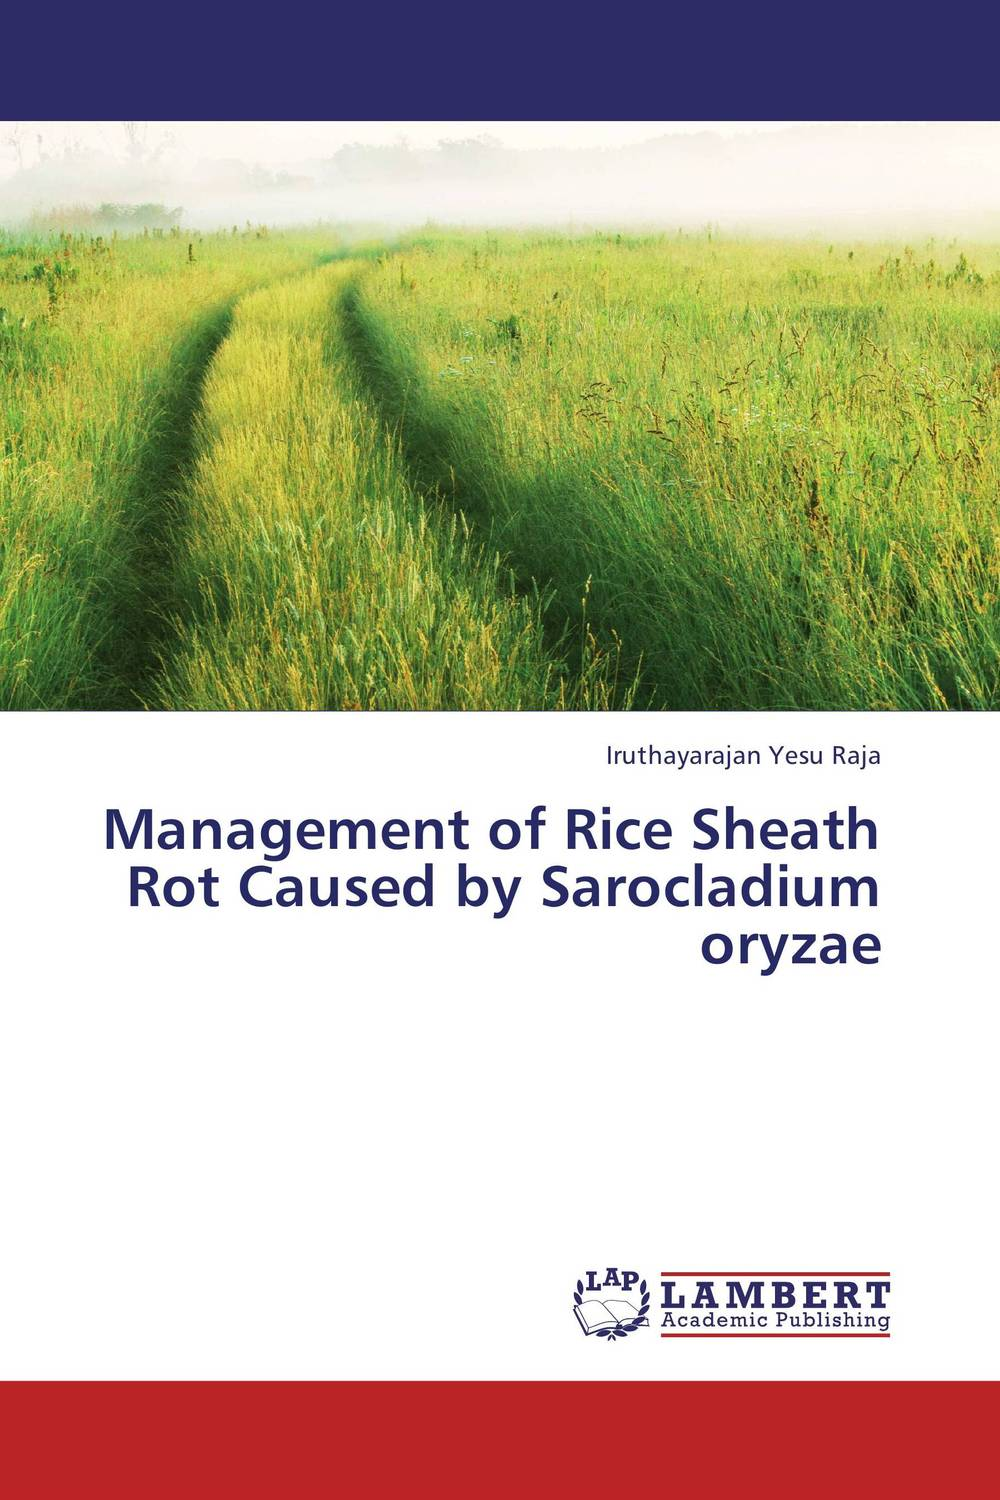 Management of Rice Sheath Rot Caused by  Sarocladium oryzae h n gour pankaj sharma and rakesh kaushal pathological aspects and management of root rot of groundnut